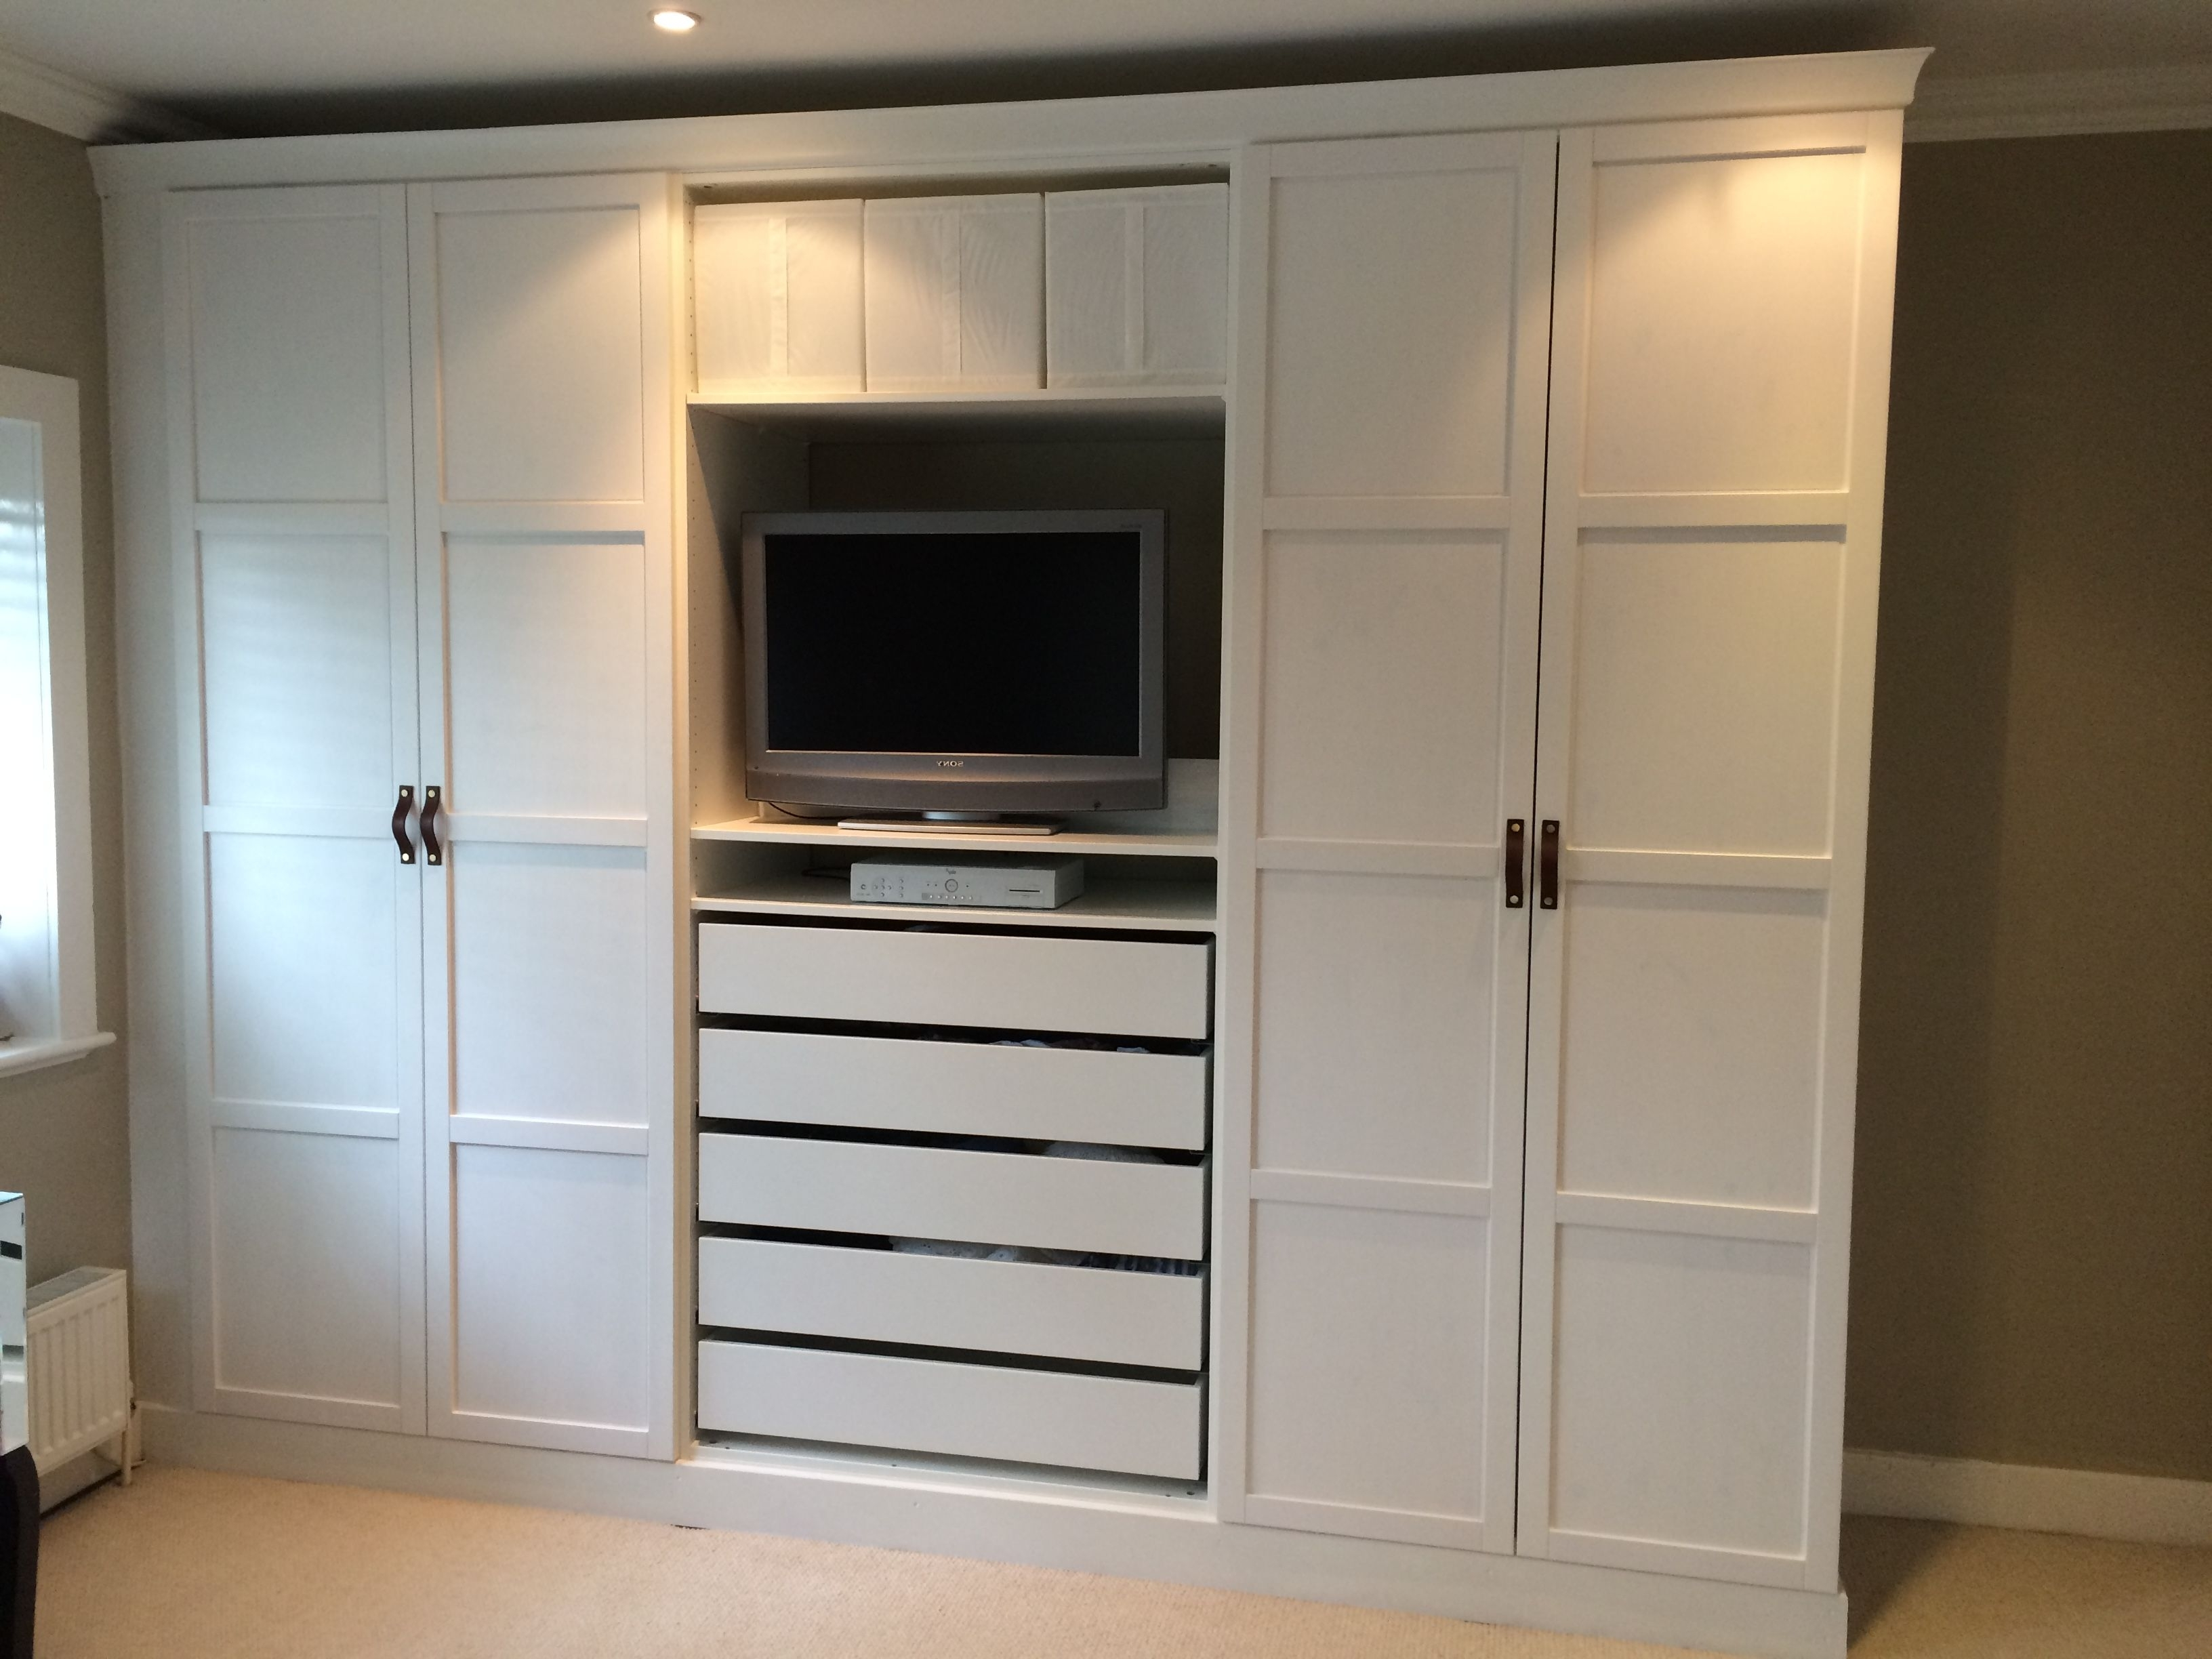 Popular Ikea Pax Wardrobes Hacked To Look Built In (View 9 of 15)